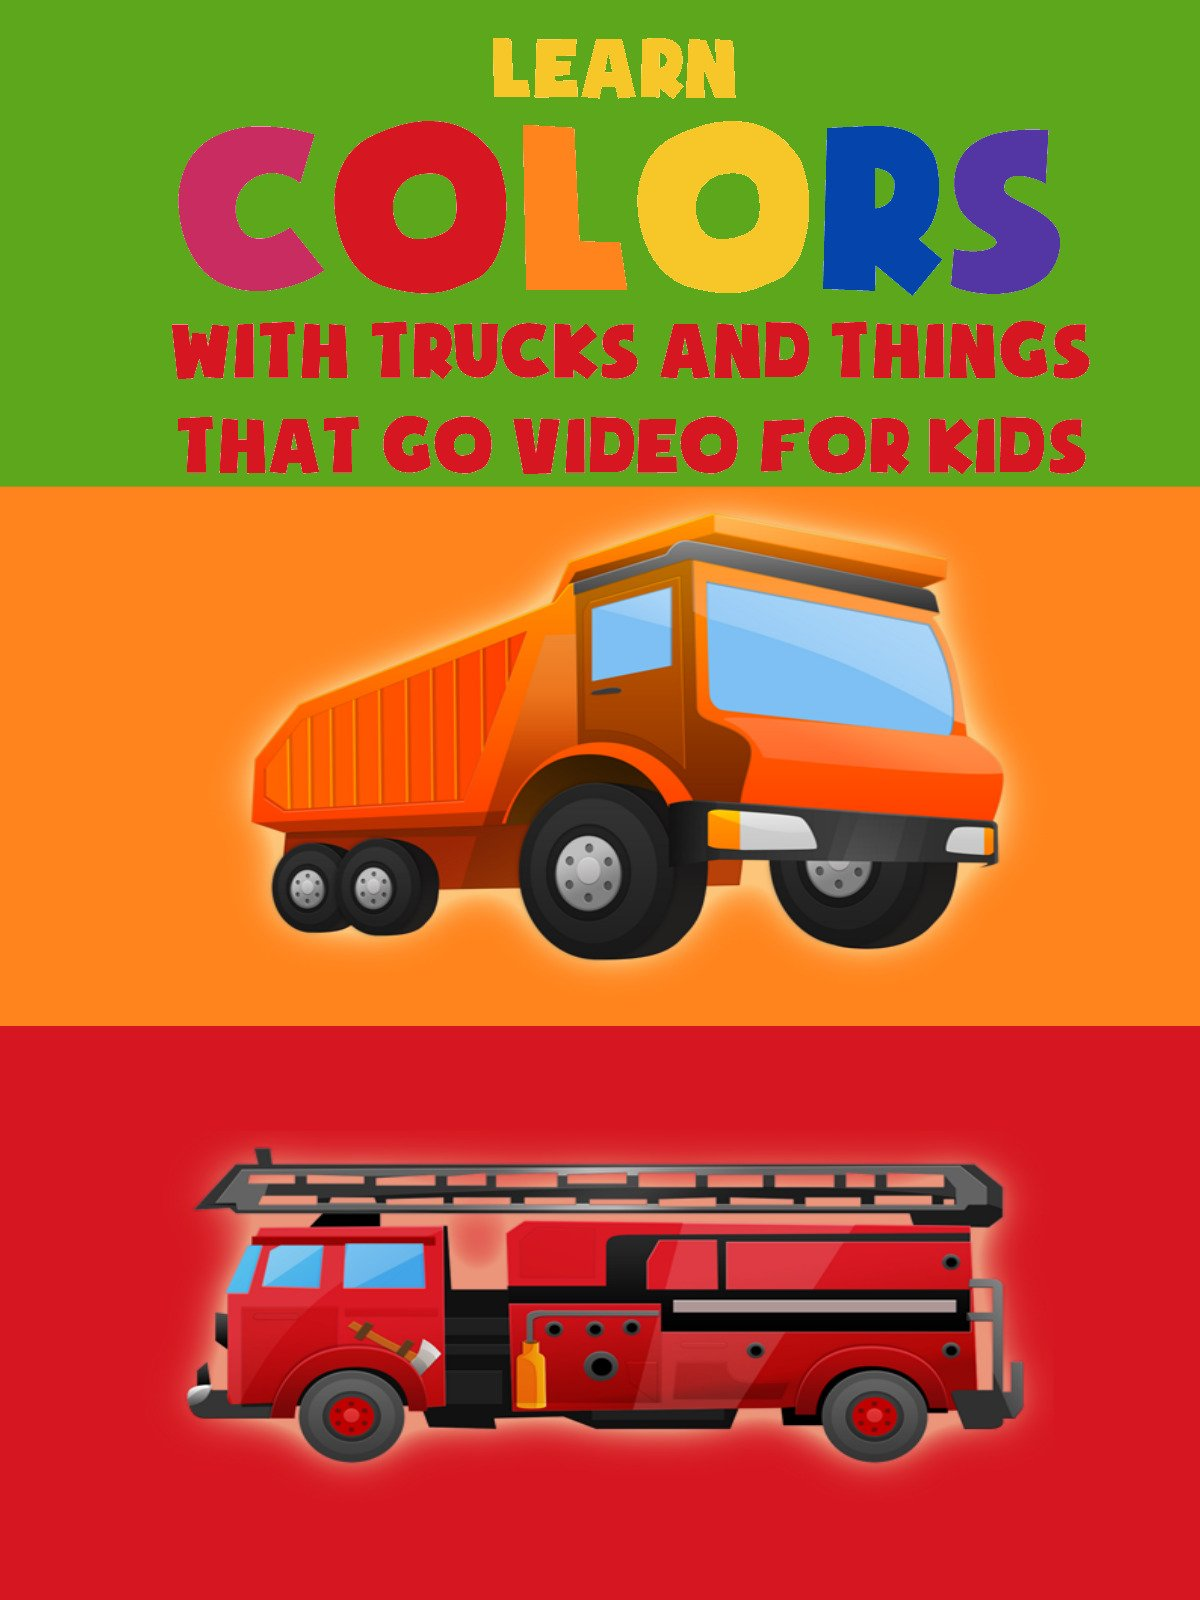 Learn Colors With Trucks And Things That Go Video For Kids